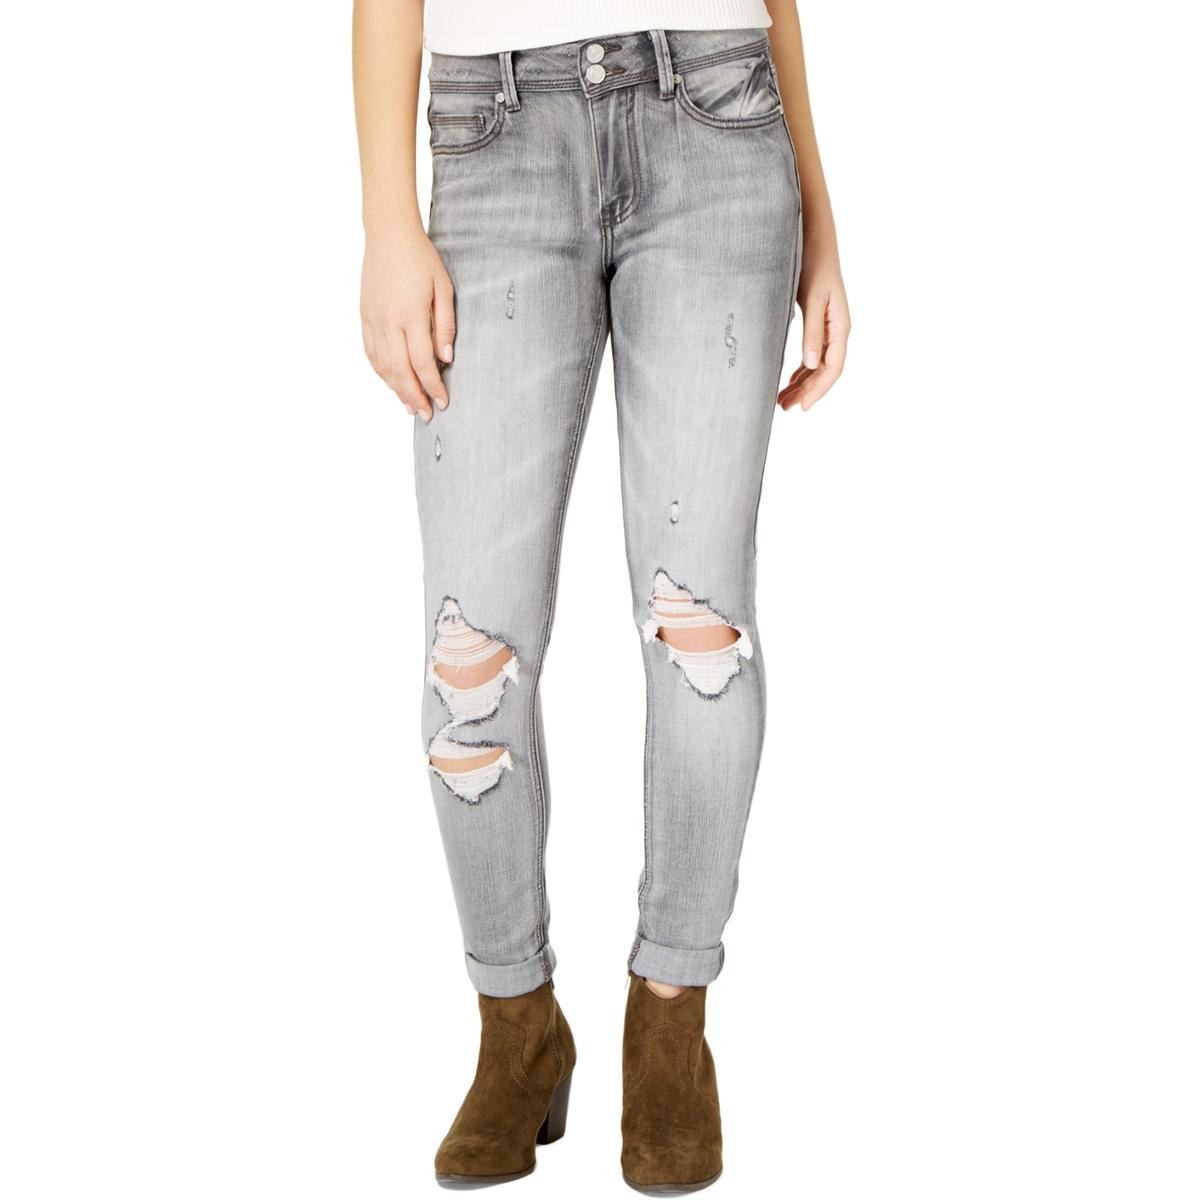 6816e4d77b7 Details about Indigo Rein Womens Ripped Distressed Skinny Ankle Jeans  Juniors BHFO 0556